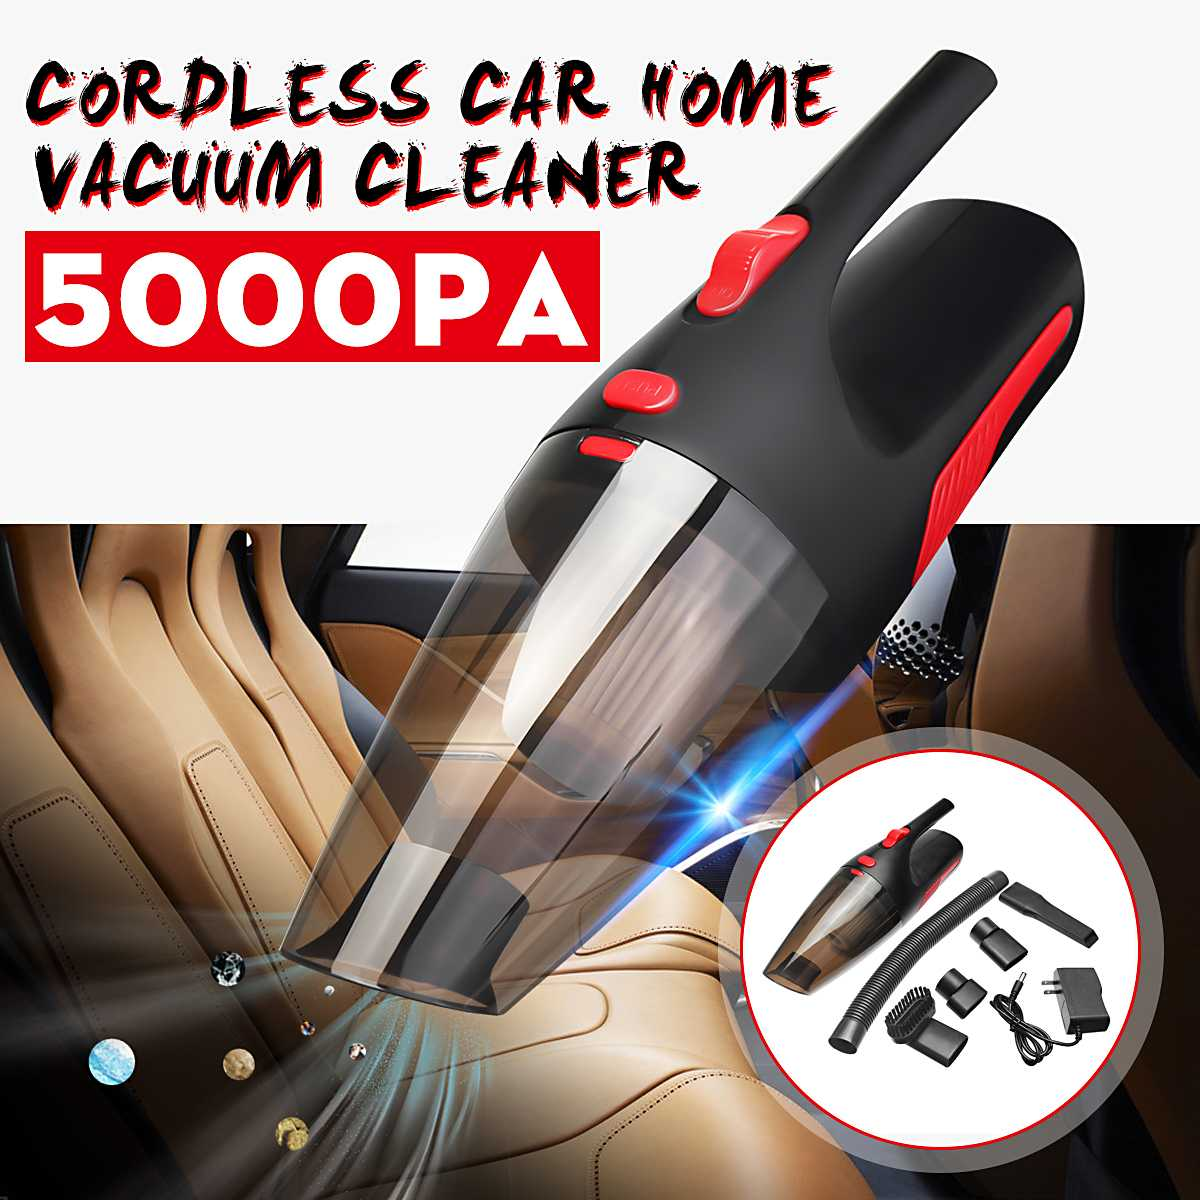 Newest 120W 5000PA Portable Car Vacuum Cleaner Cordless Handheld Rechargeable Wet/Dry Cleaner Household Cleaning Tools For Home Vacuum Cleaners    - AliExpress